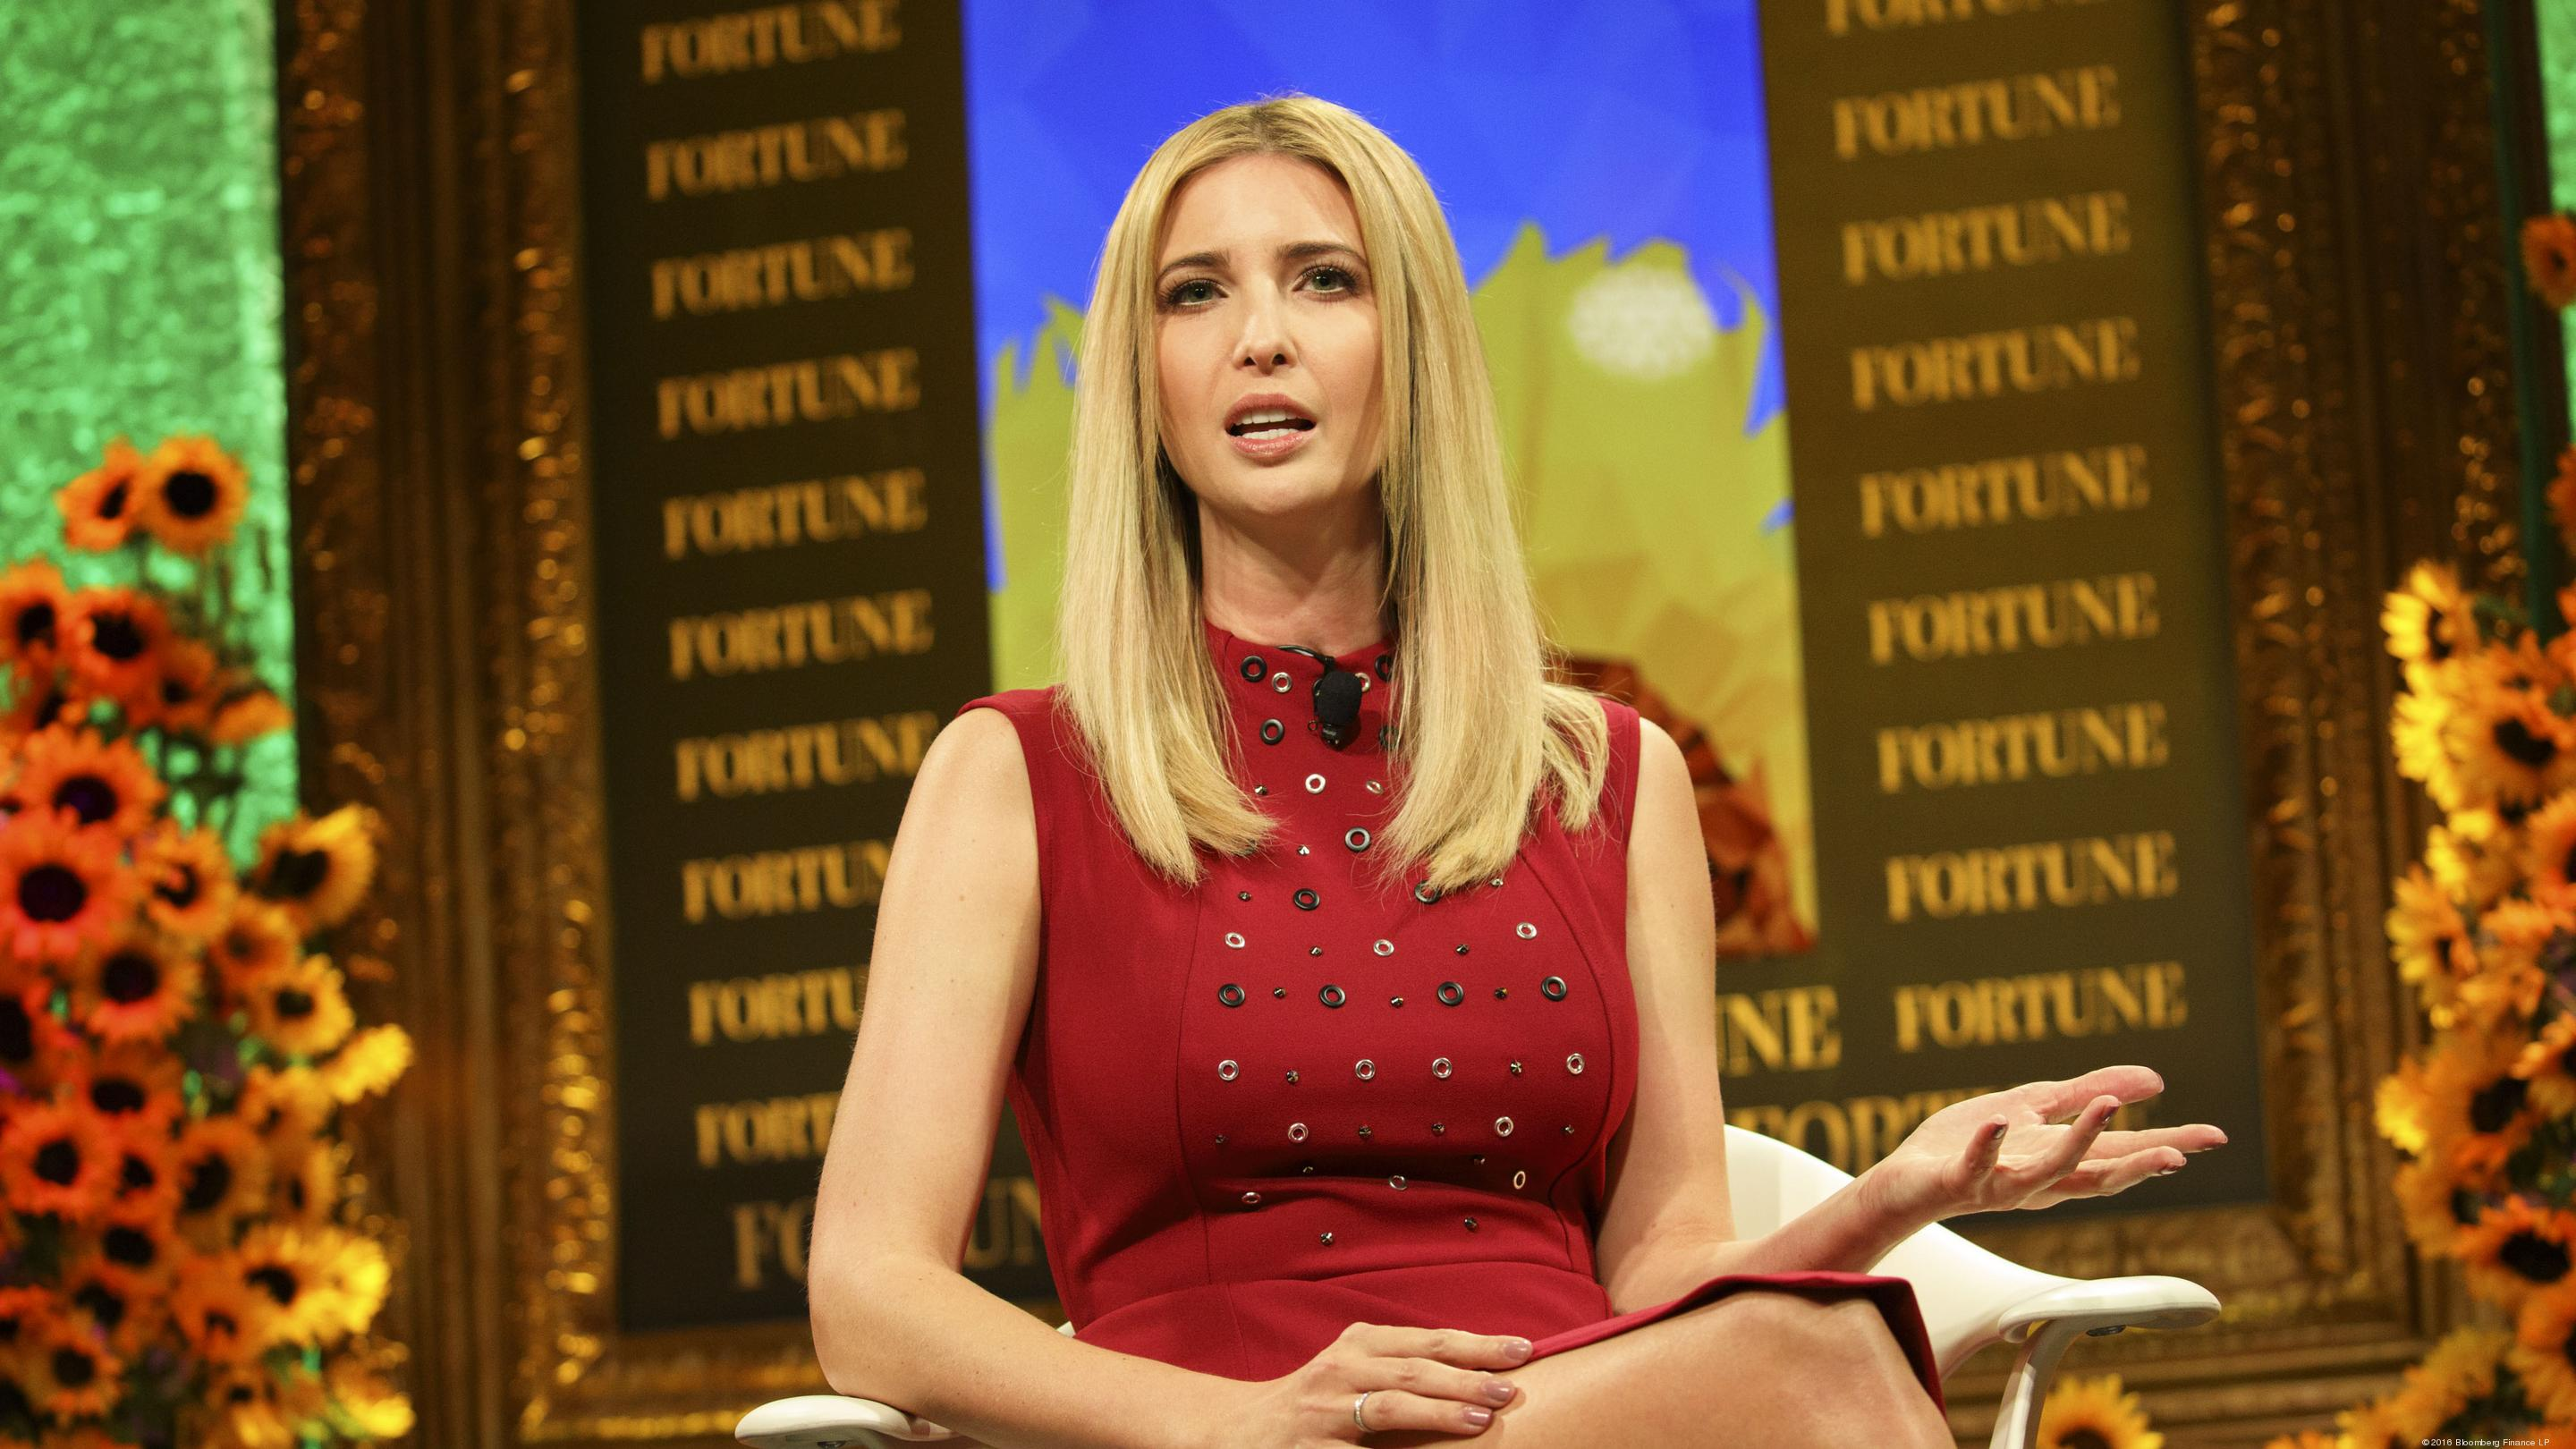 Ivanka-inspired women's fund nets $100M donation